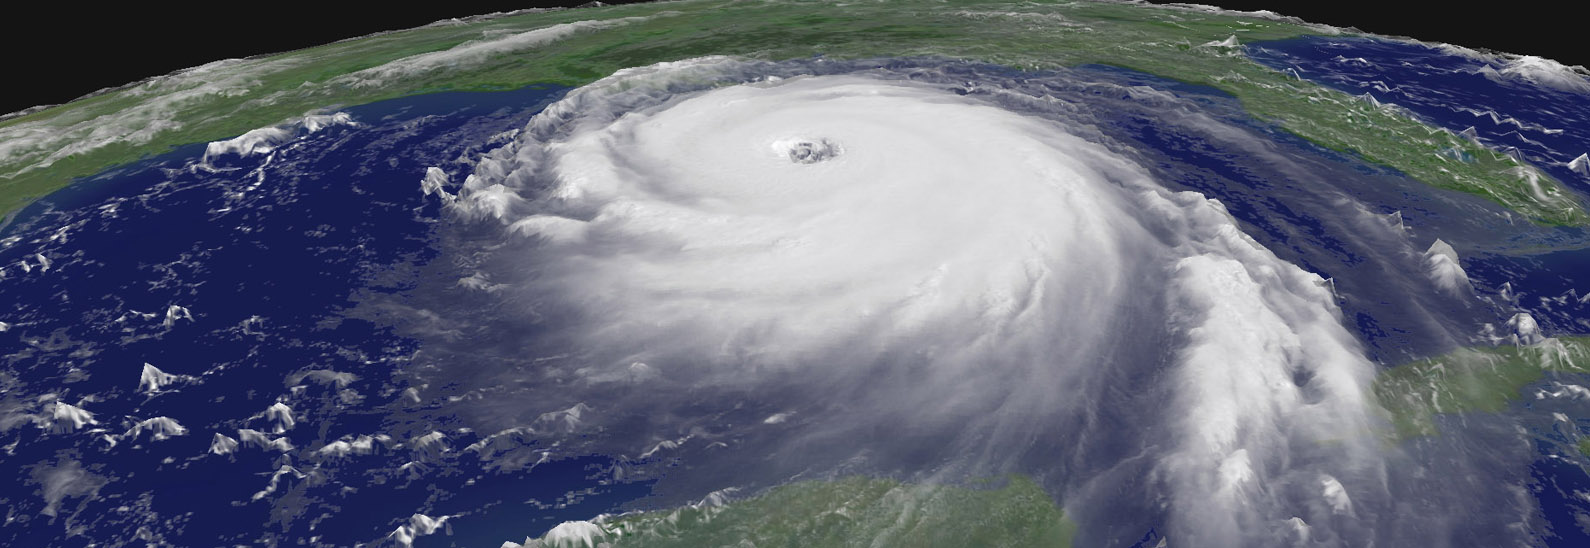 headers_homepage_0005_hurricane